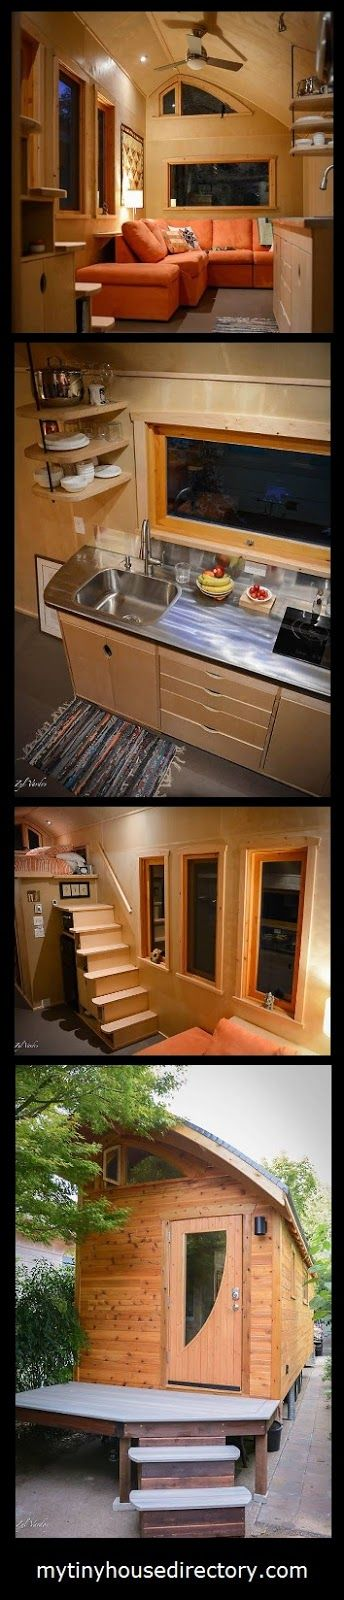 This unique Tiny Home has a   24' x 8' main floor and a 8' x 8' sleeping loft.   A large living room and stairs with storage.      Check I...